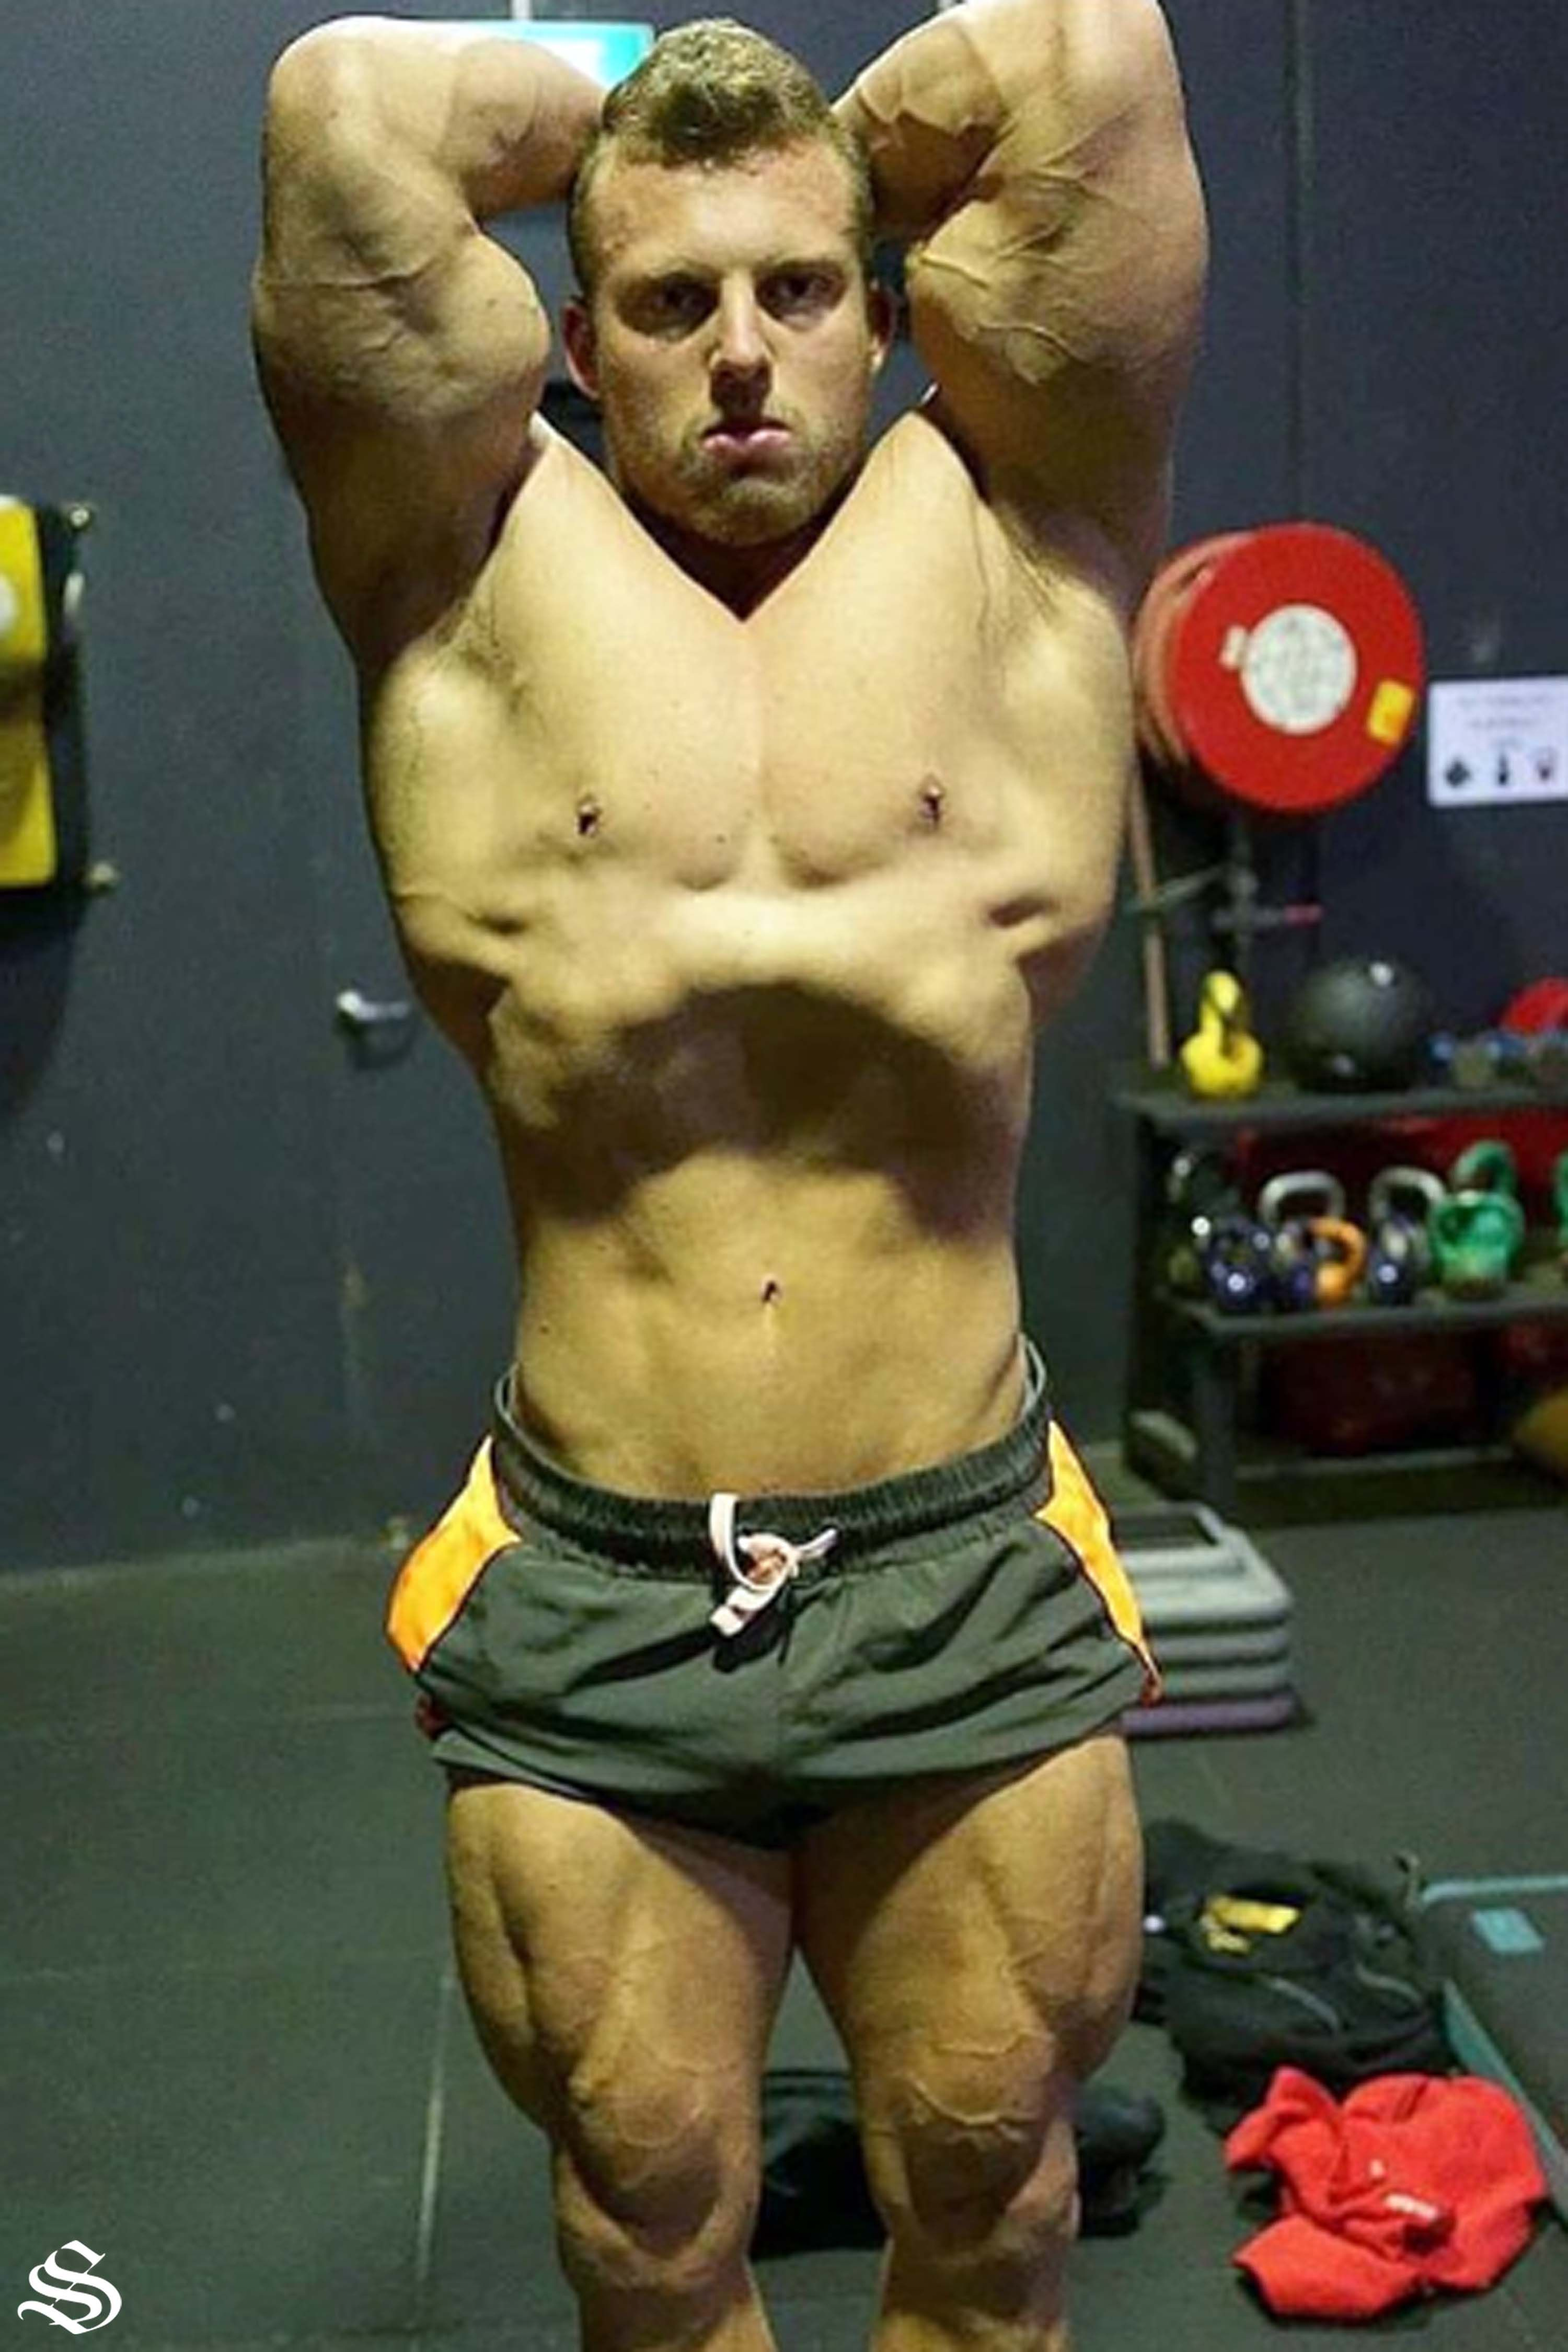 a0a924bd5 Strong Lift Wear: Powerlifting Shorts, Gym Singlets & More. What's your  favourite bodybuilding pose?